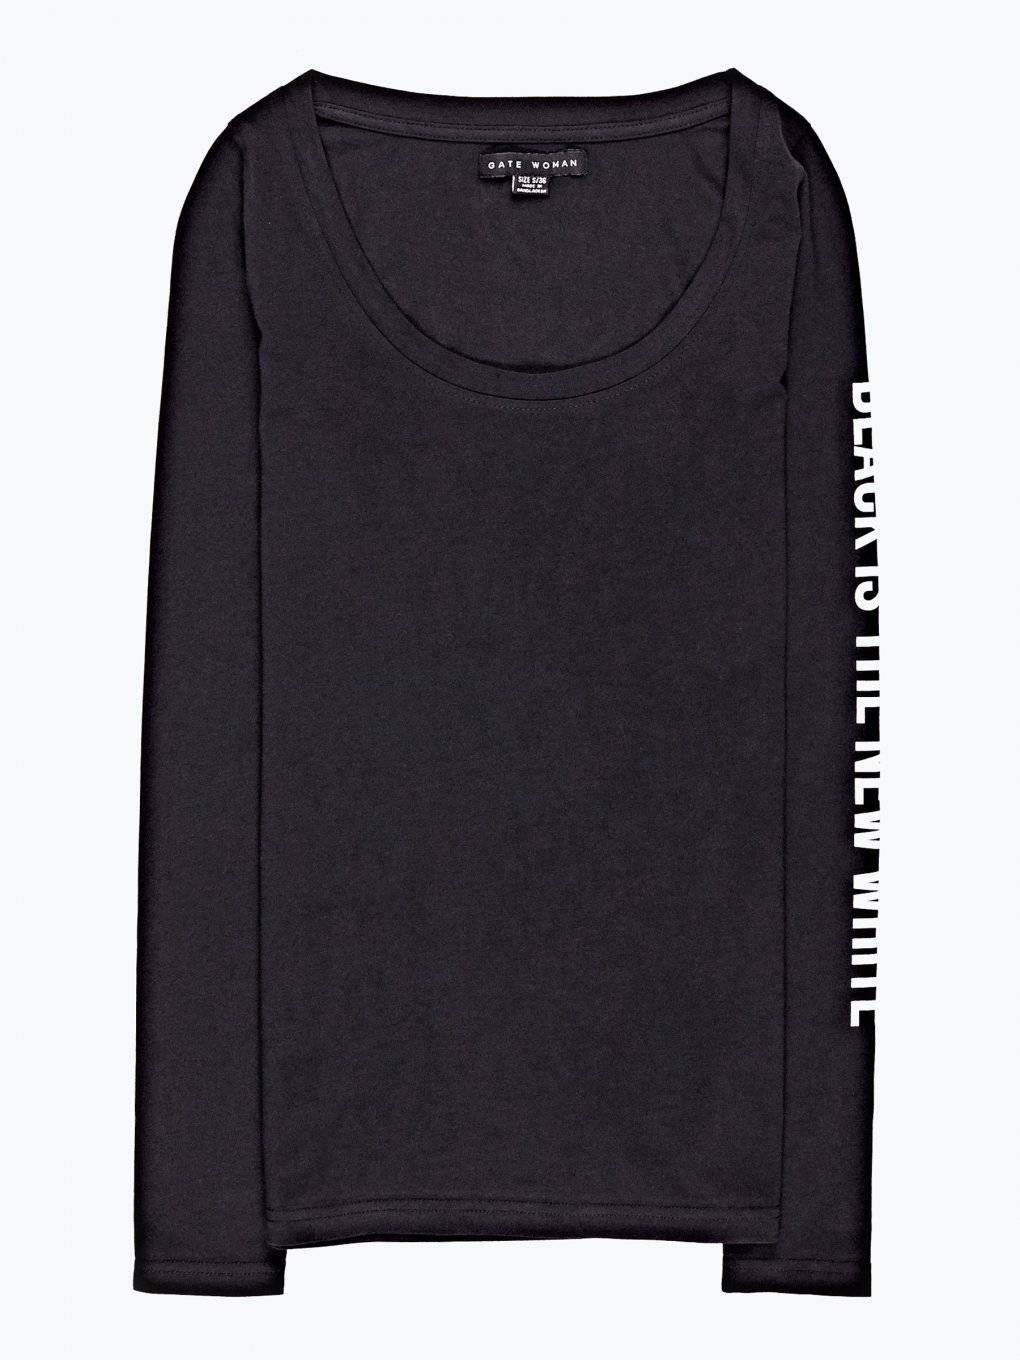 T-shirt with print on sleeve